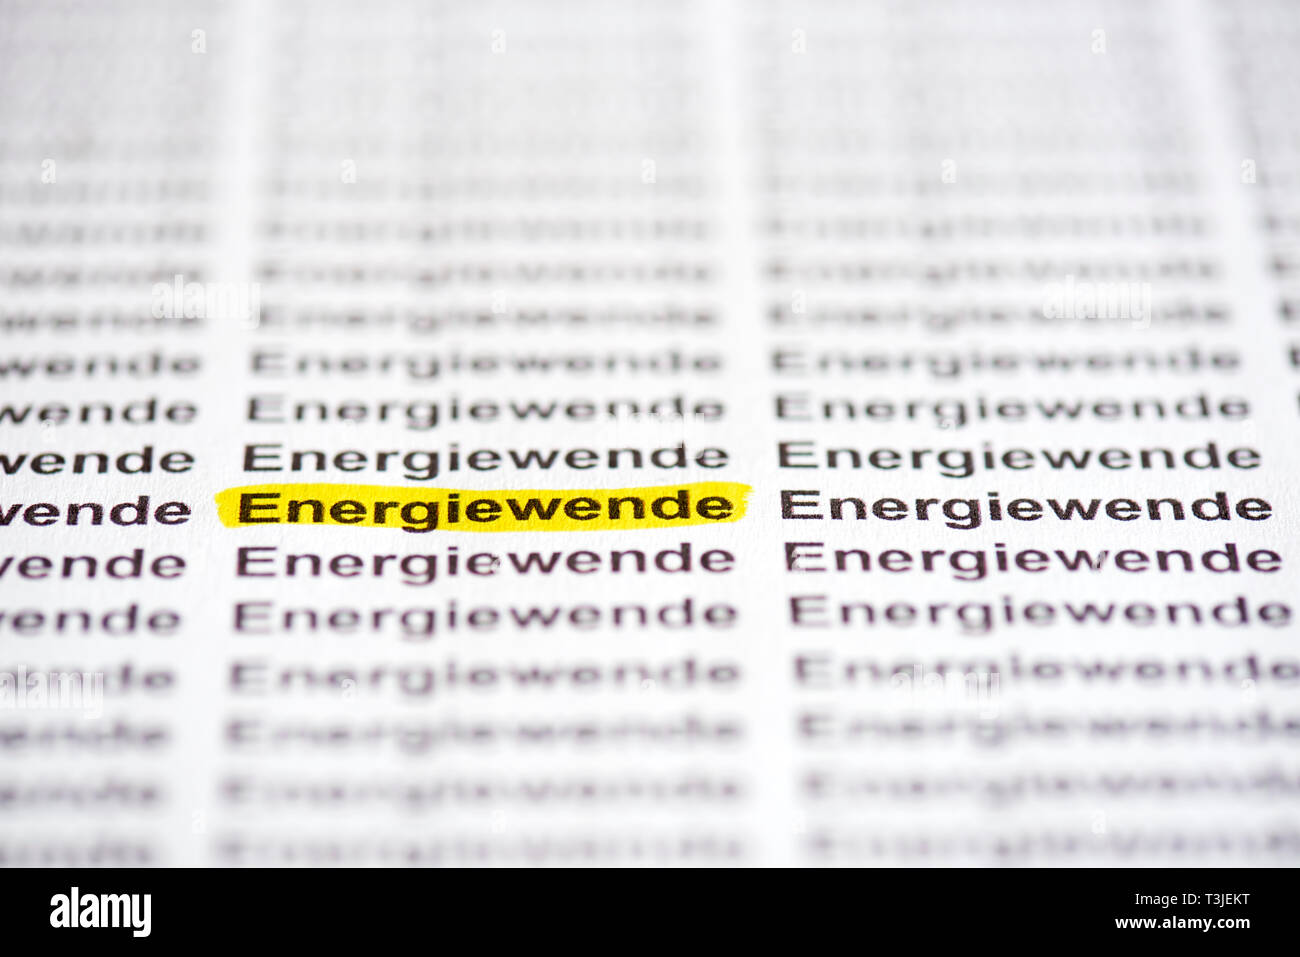 Energiewende - Stock Image